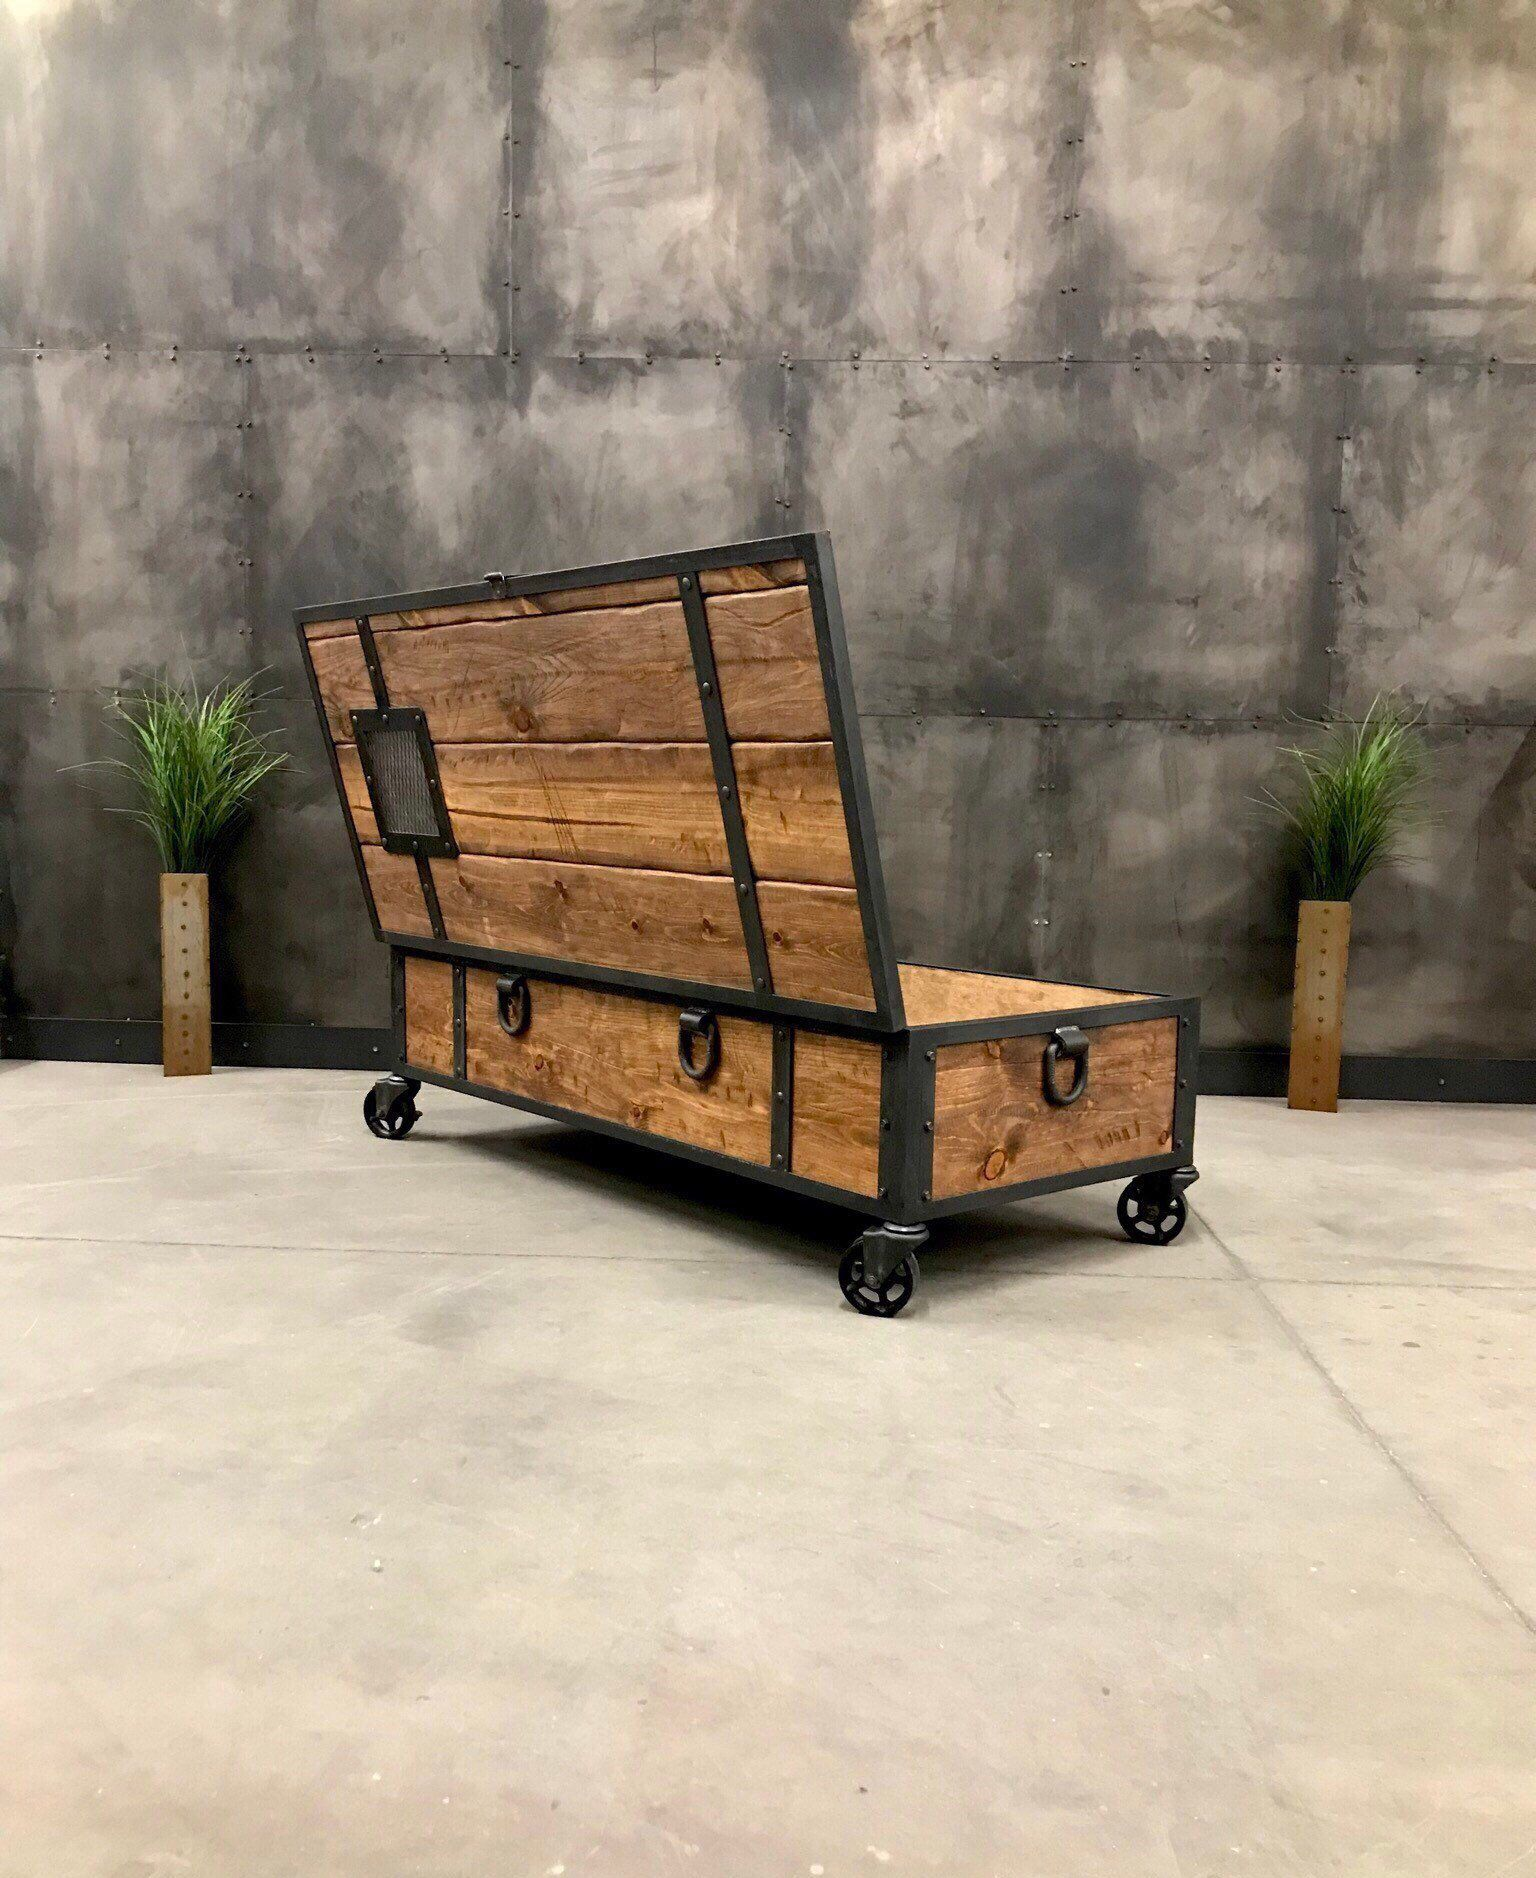 Best Discount Furniture Sites: Rustic,wood Coffee Table With Wheels And Handles,wood